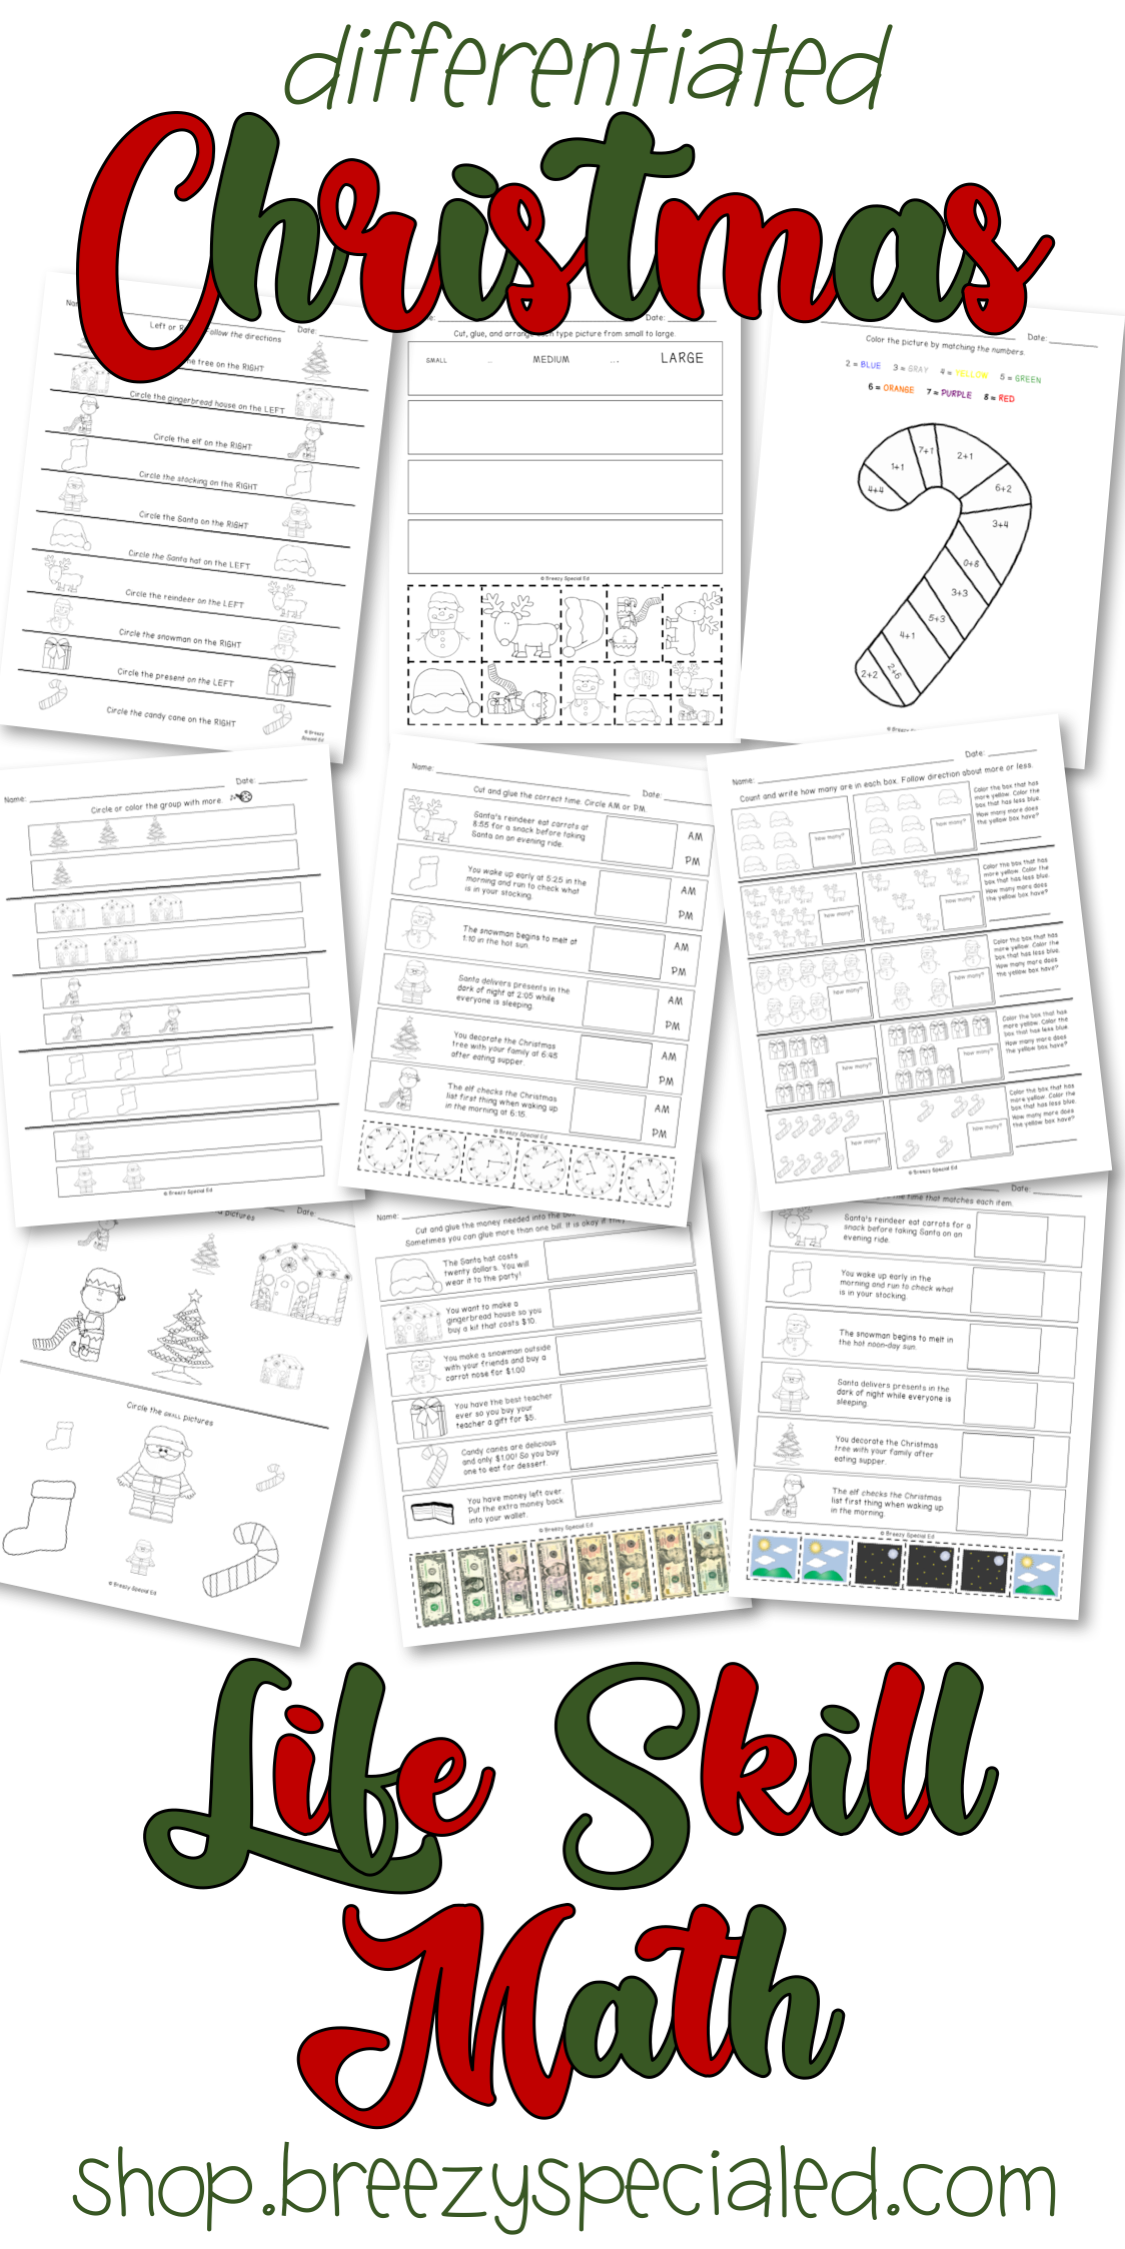 Christmas Life Skill Math For Special Education Life Skills Classroom Life Skills Life Skills Class [ 2249 x 1125 Pixel ]